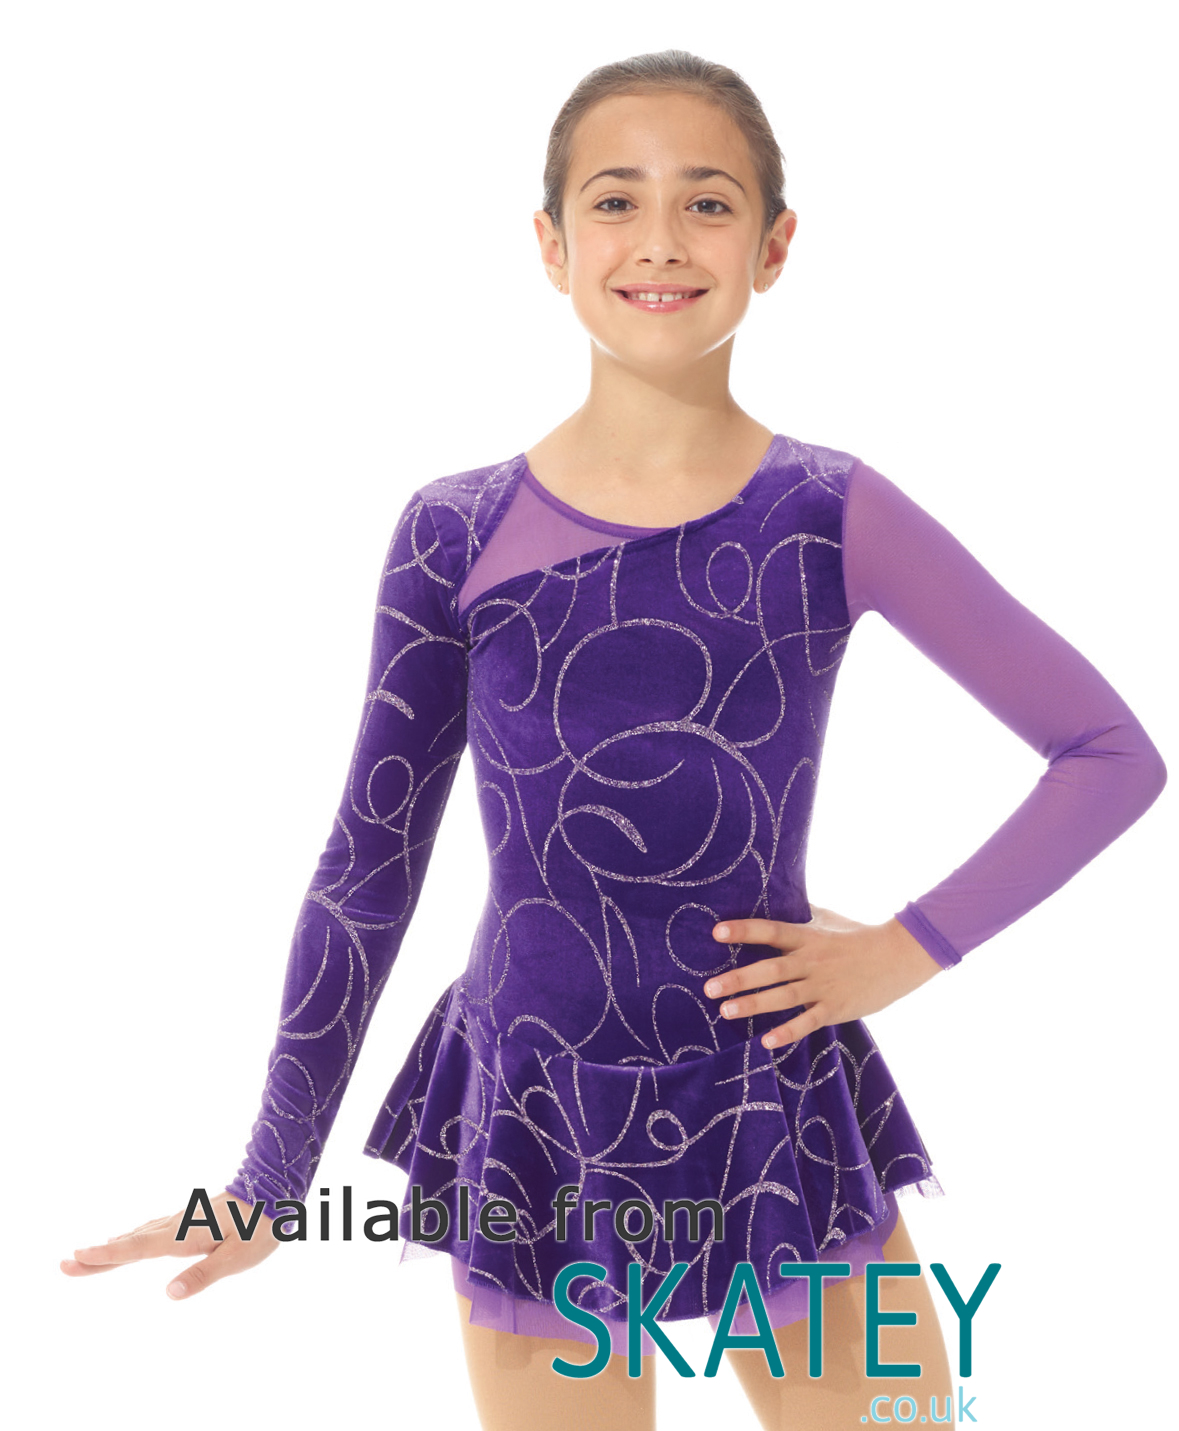 Sporting Goods Mondor Girl Ice Skating Dress Size 8-10 Worn Once Matching Hair Band